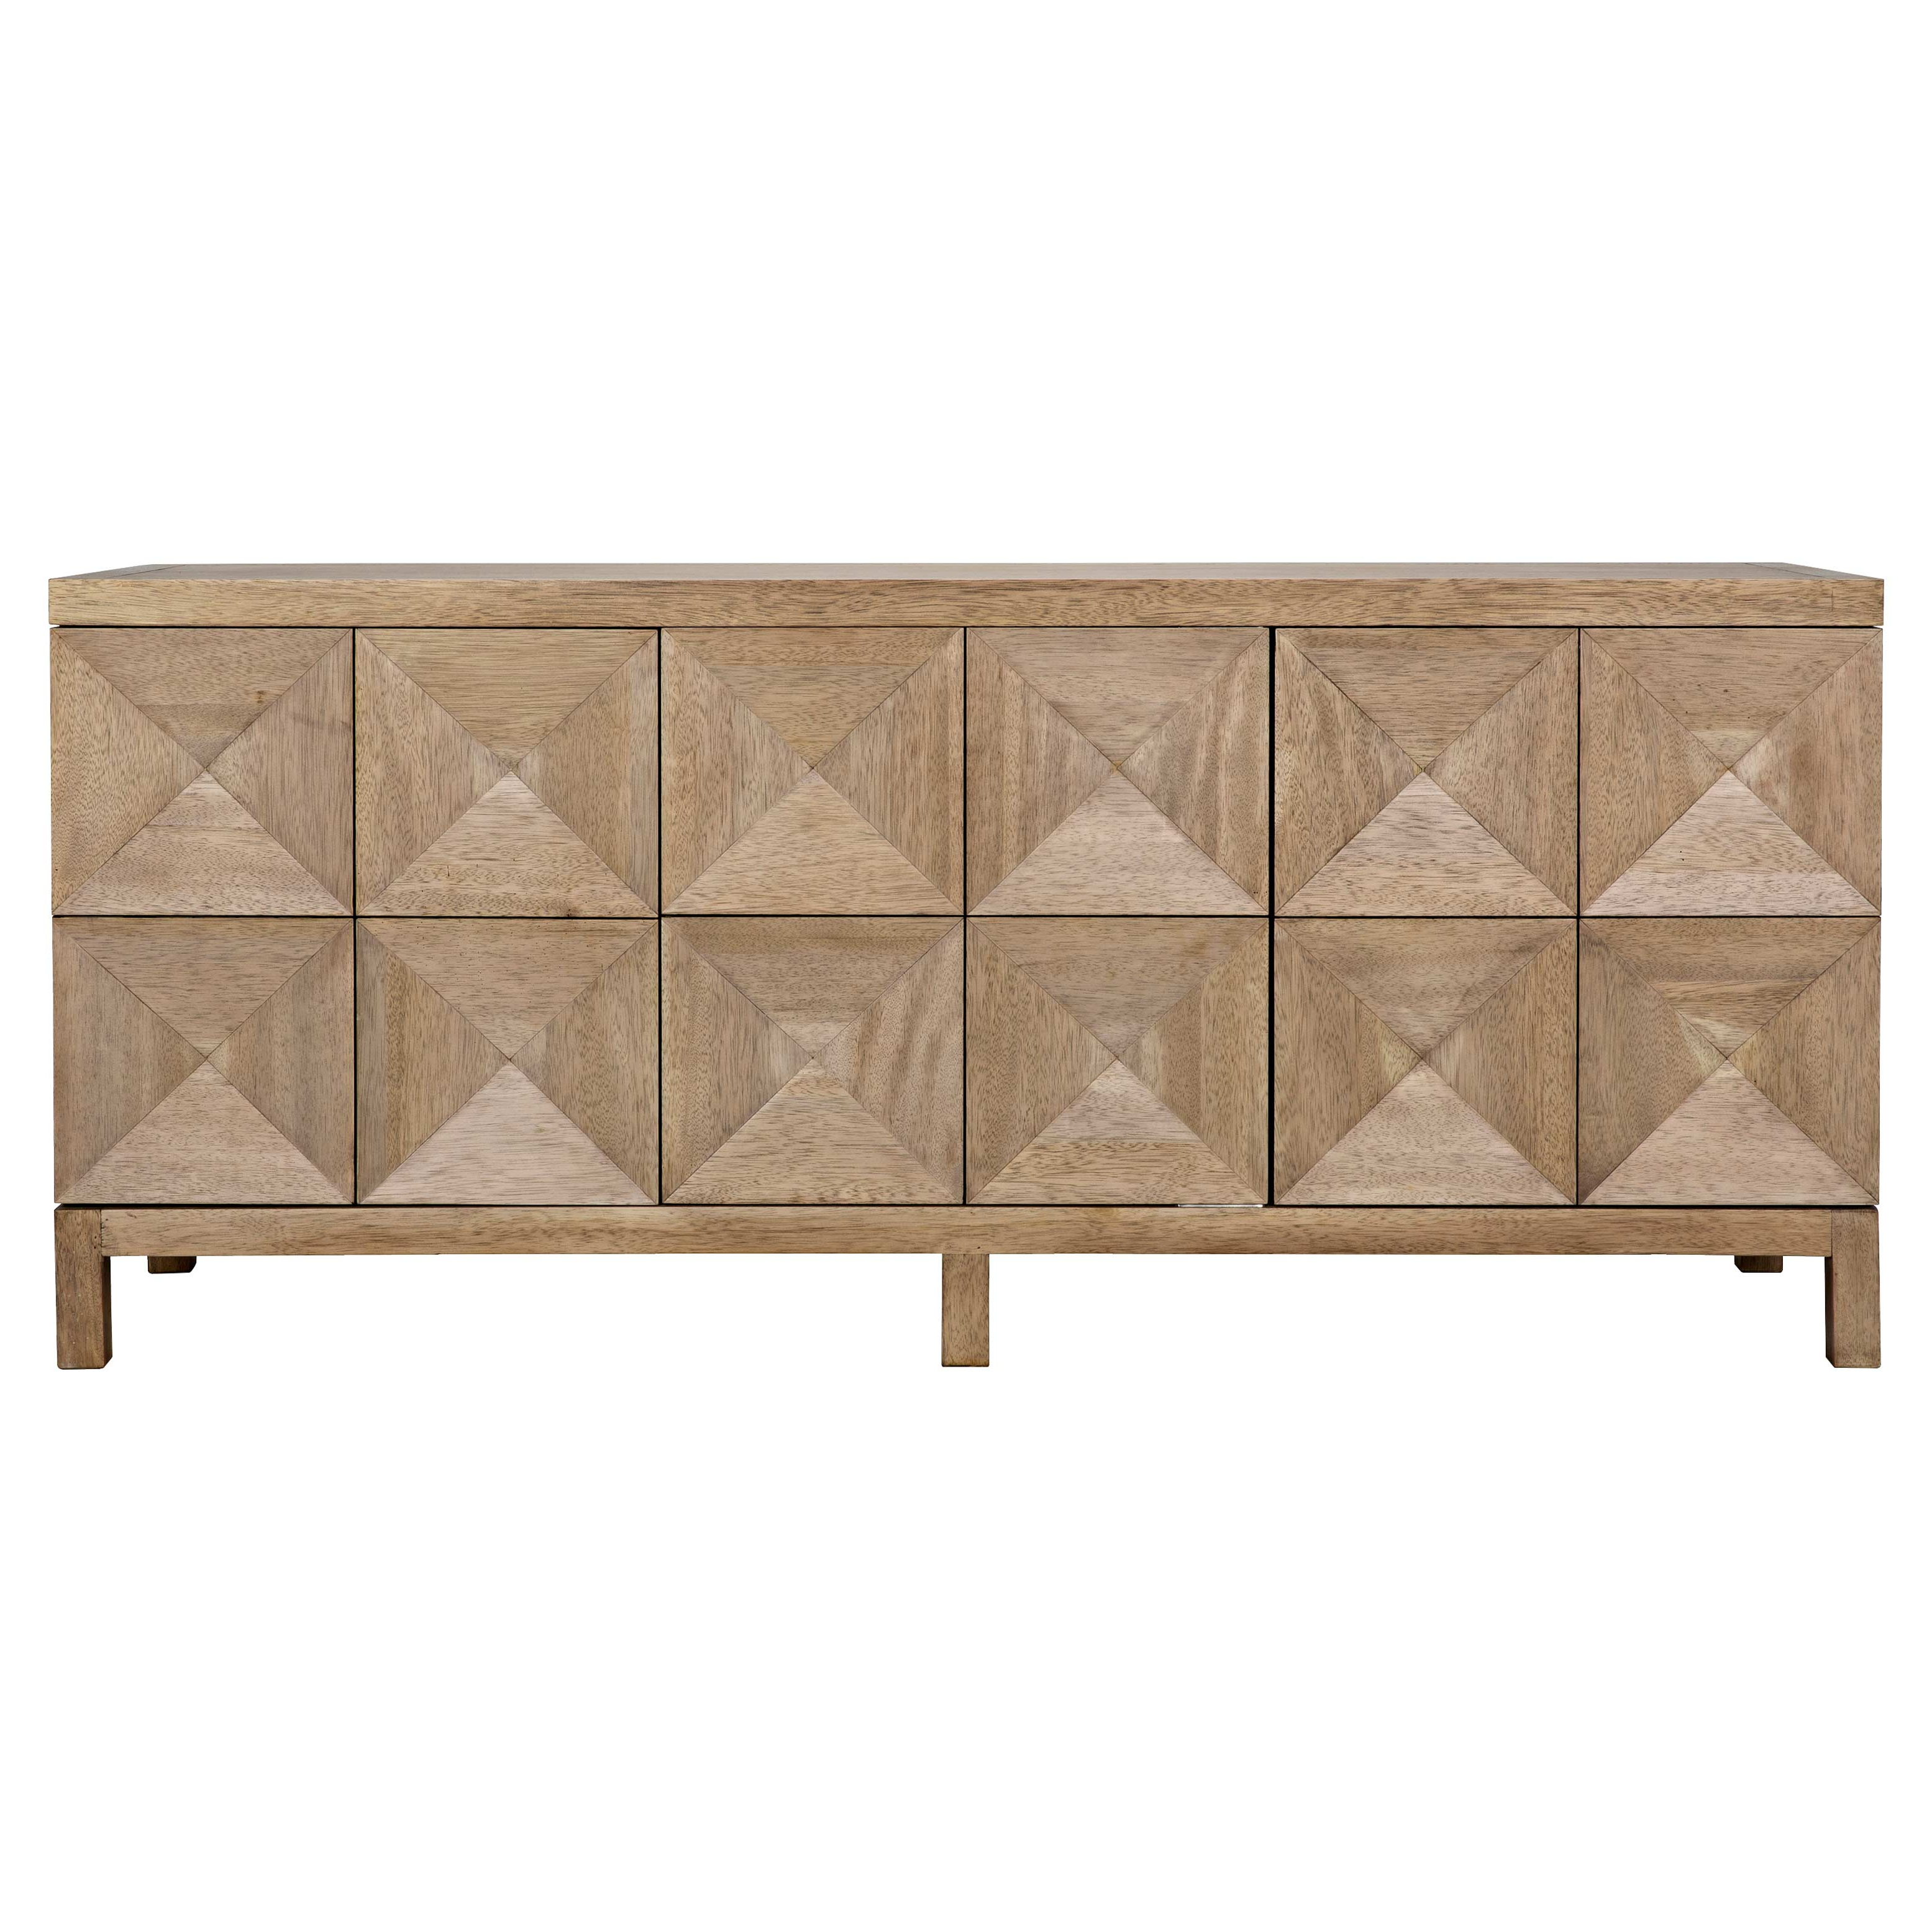 Kathy Kuo Home In Brown Chevron 4 Door Sideboards (View 10 of 20)